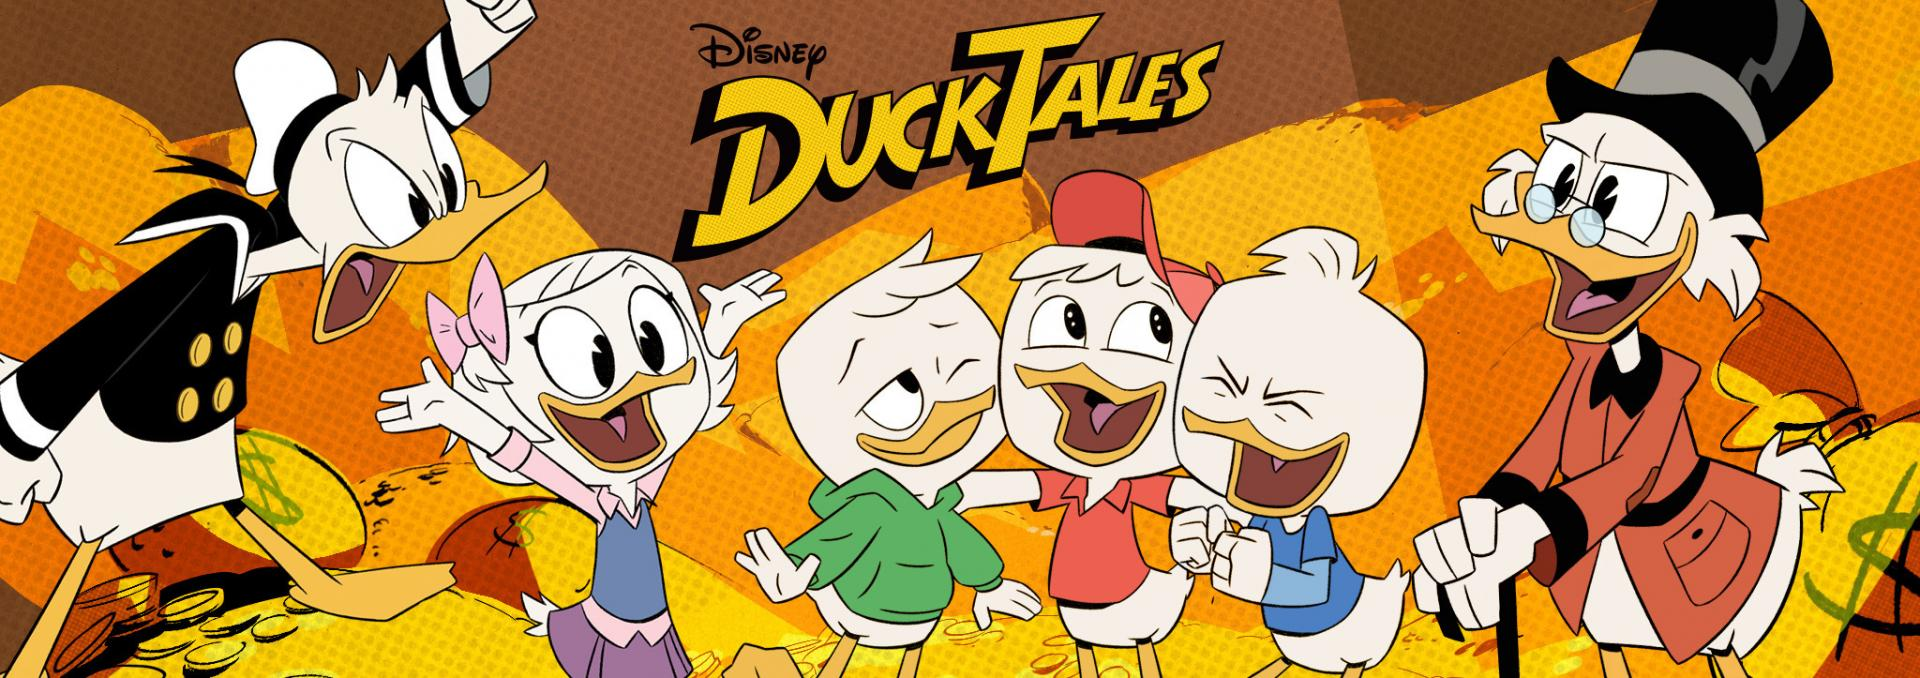 Ducktales 0 Not Pony Tails Or Cotton Tails Alpha Comics